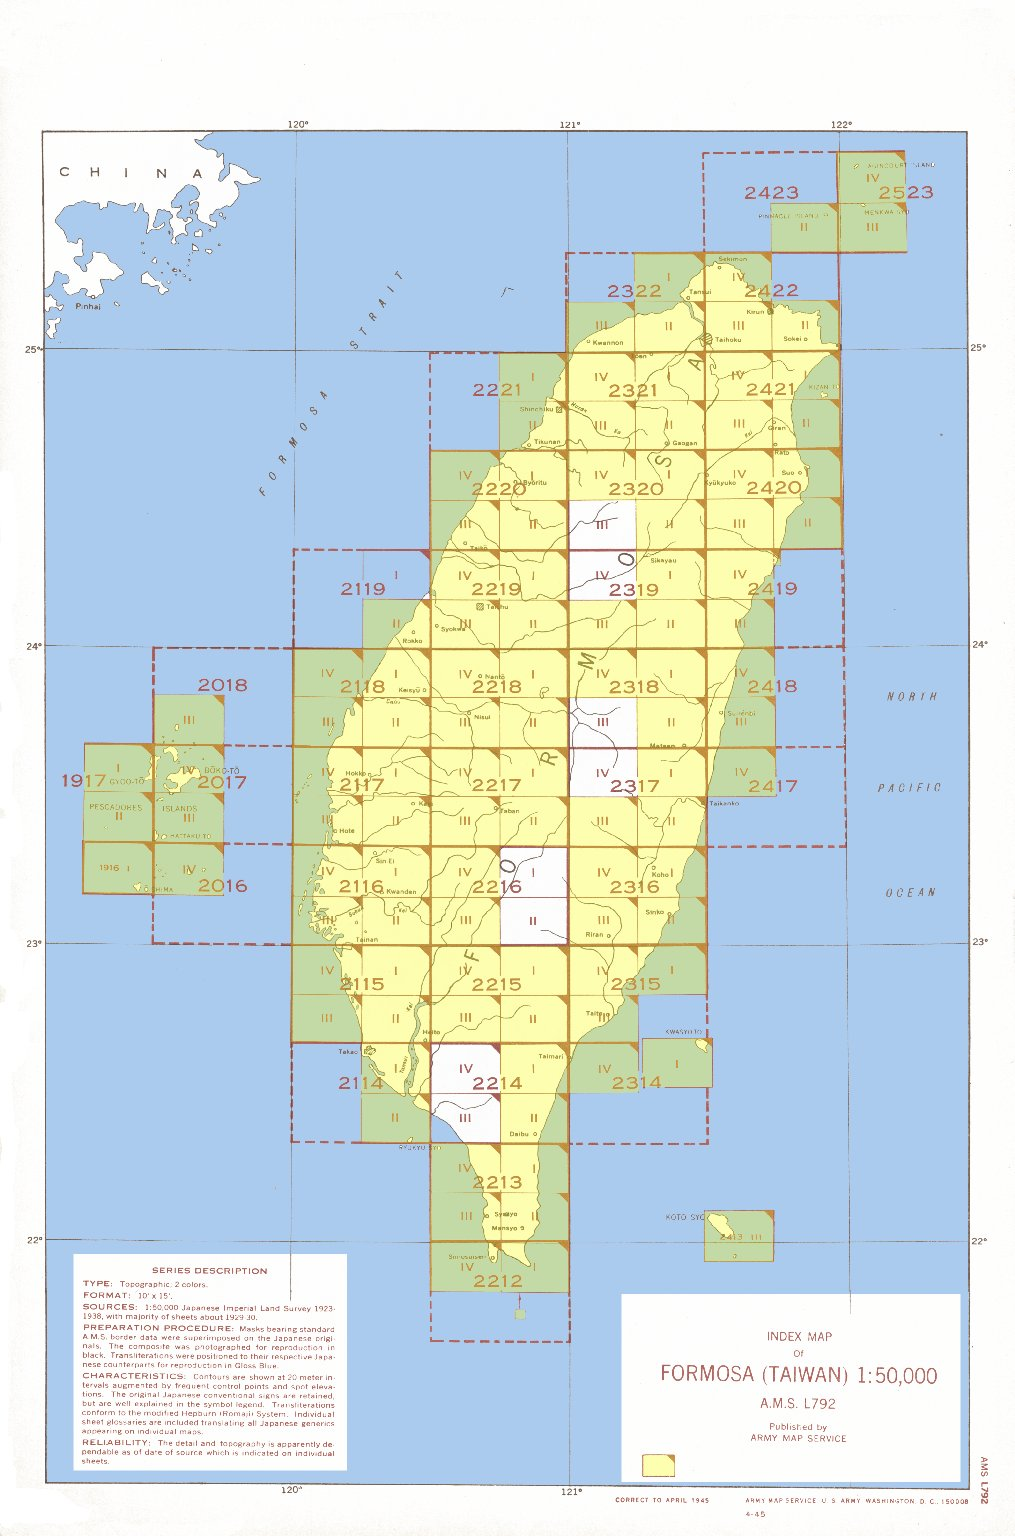 Index map of Formosa (Taiwan) 1:50,000